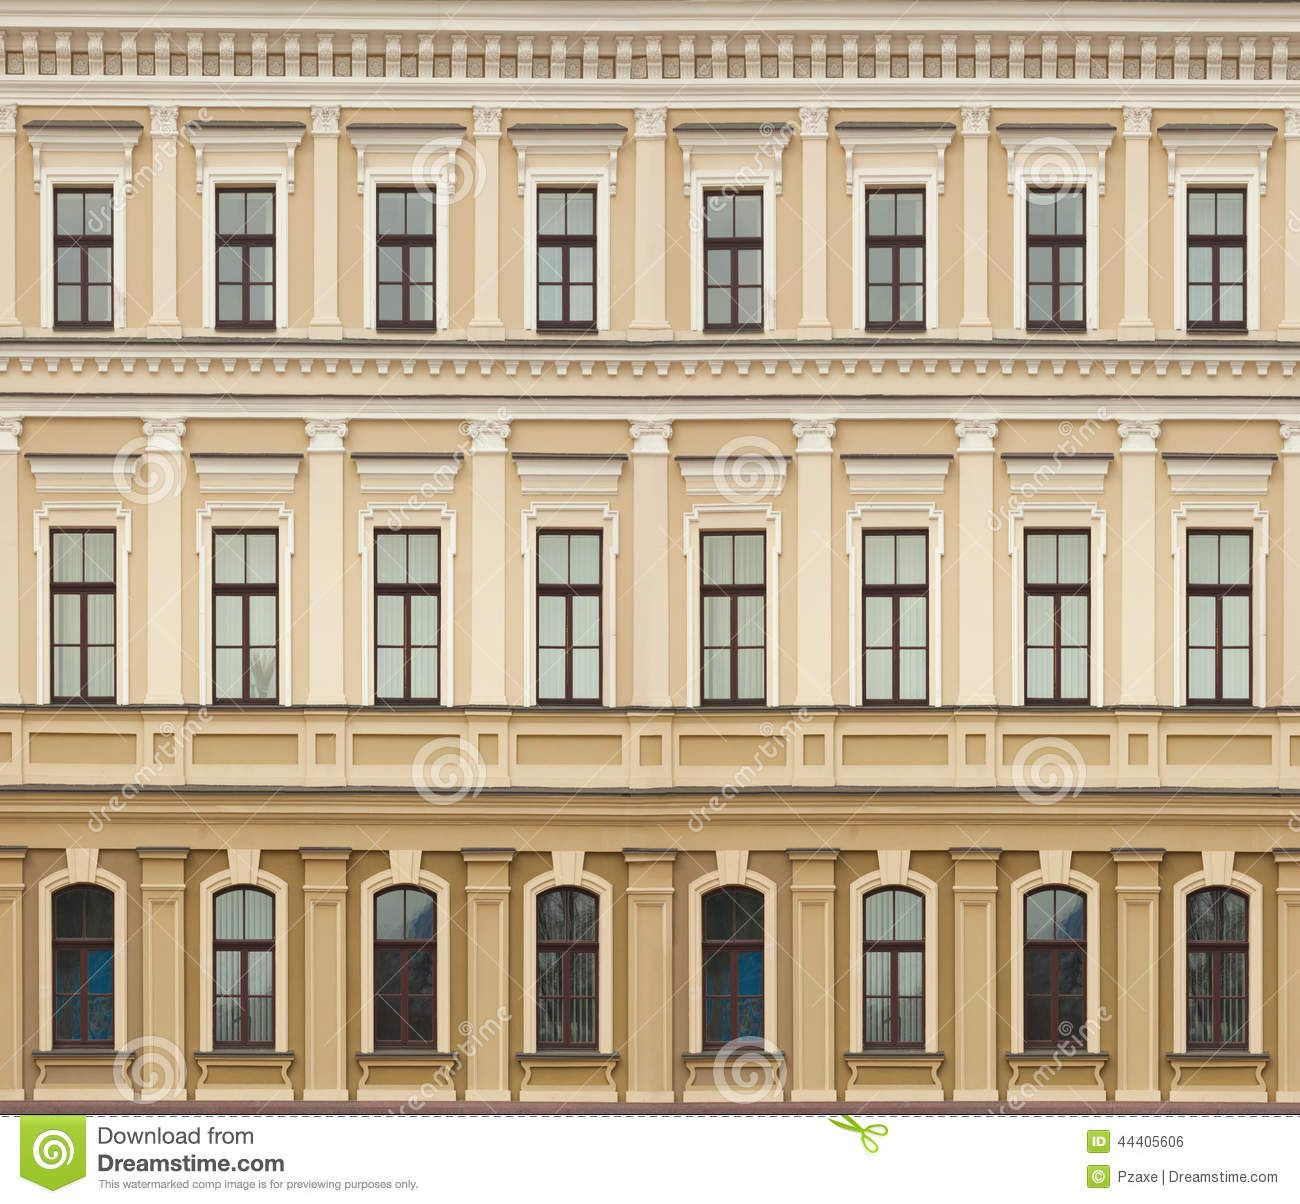 Architectural Building Elements : Neoclassical architecture elements neoclassic